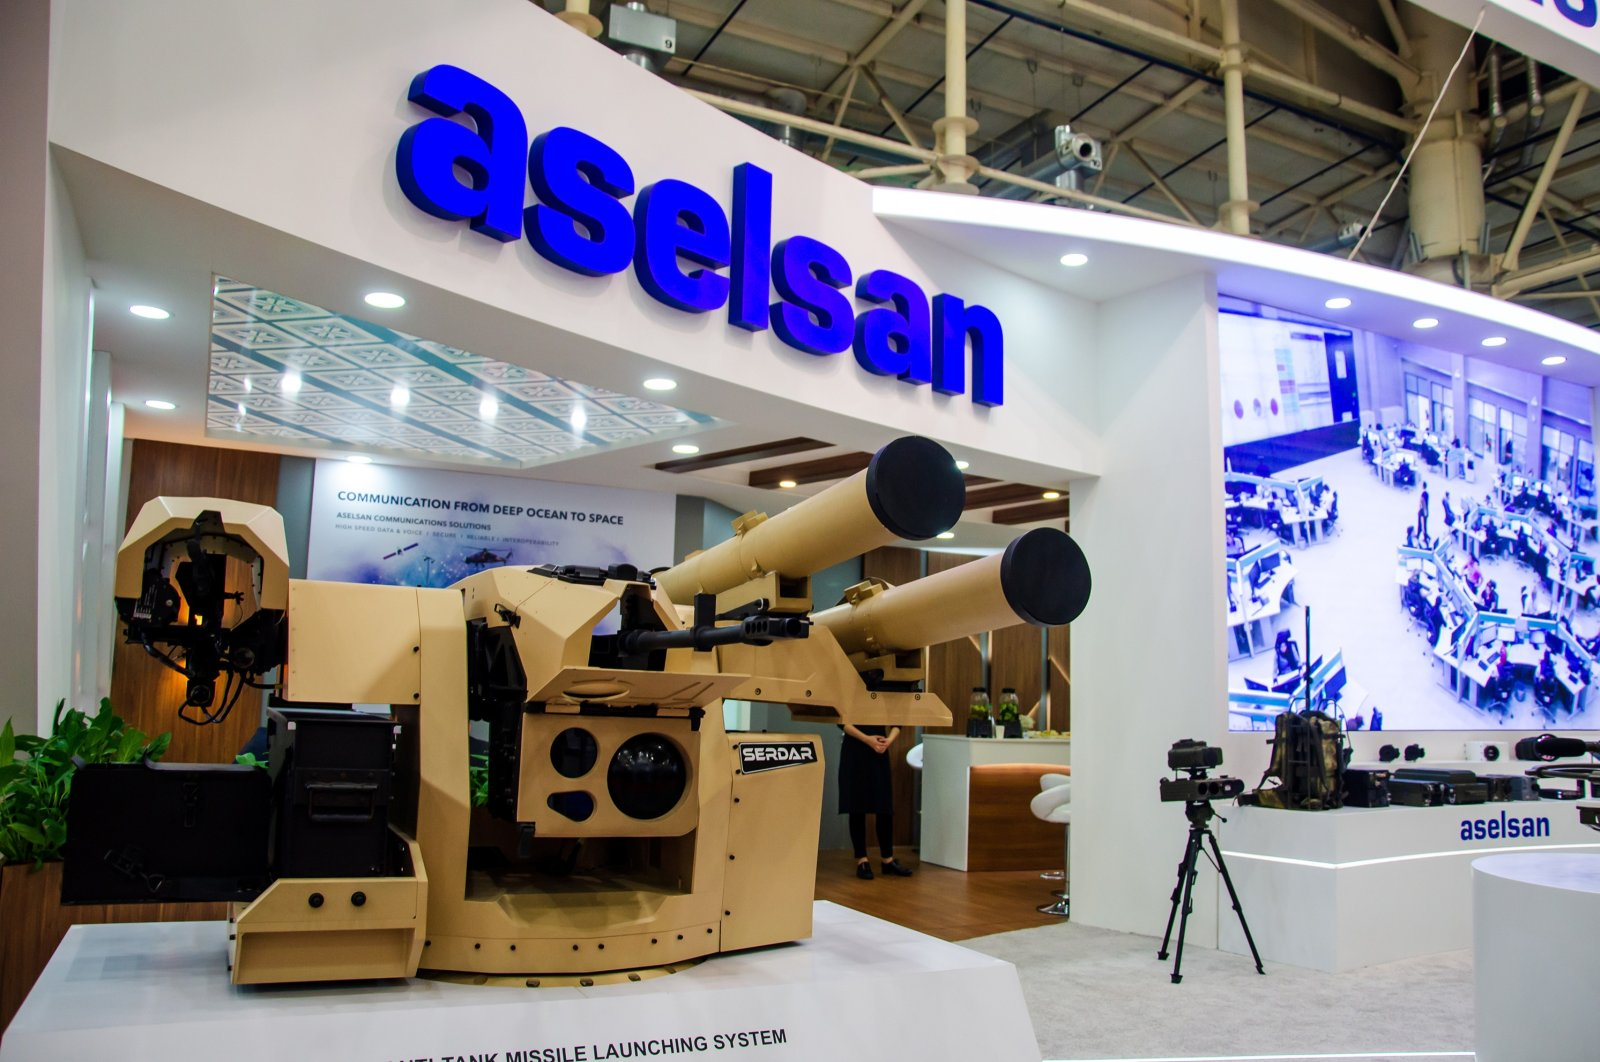 An ASELSAN missile launching system on display at a fair in Kyiv, Ukraine, Oct. 9, 2019. (Shutterstock Photo)